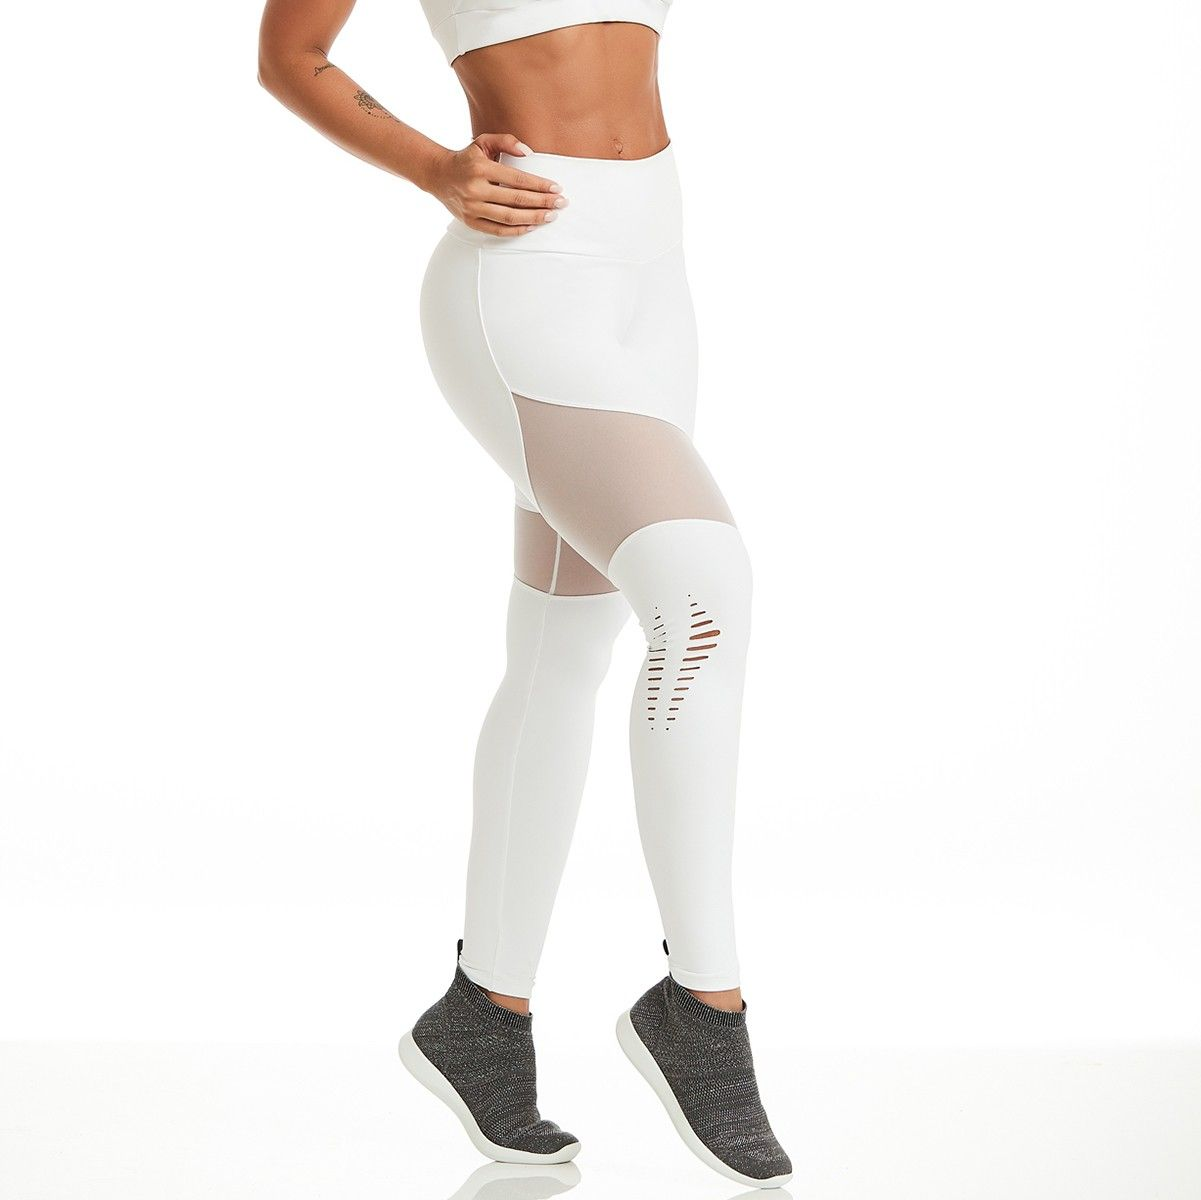 e7957d4be2d CAJUBRASIL LEGGINGS NZ POWERFUL -WHITE Sexy Workout Clothes